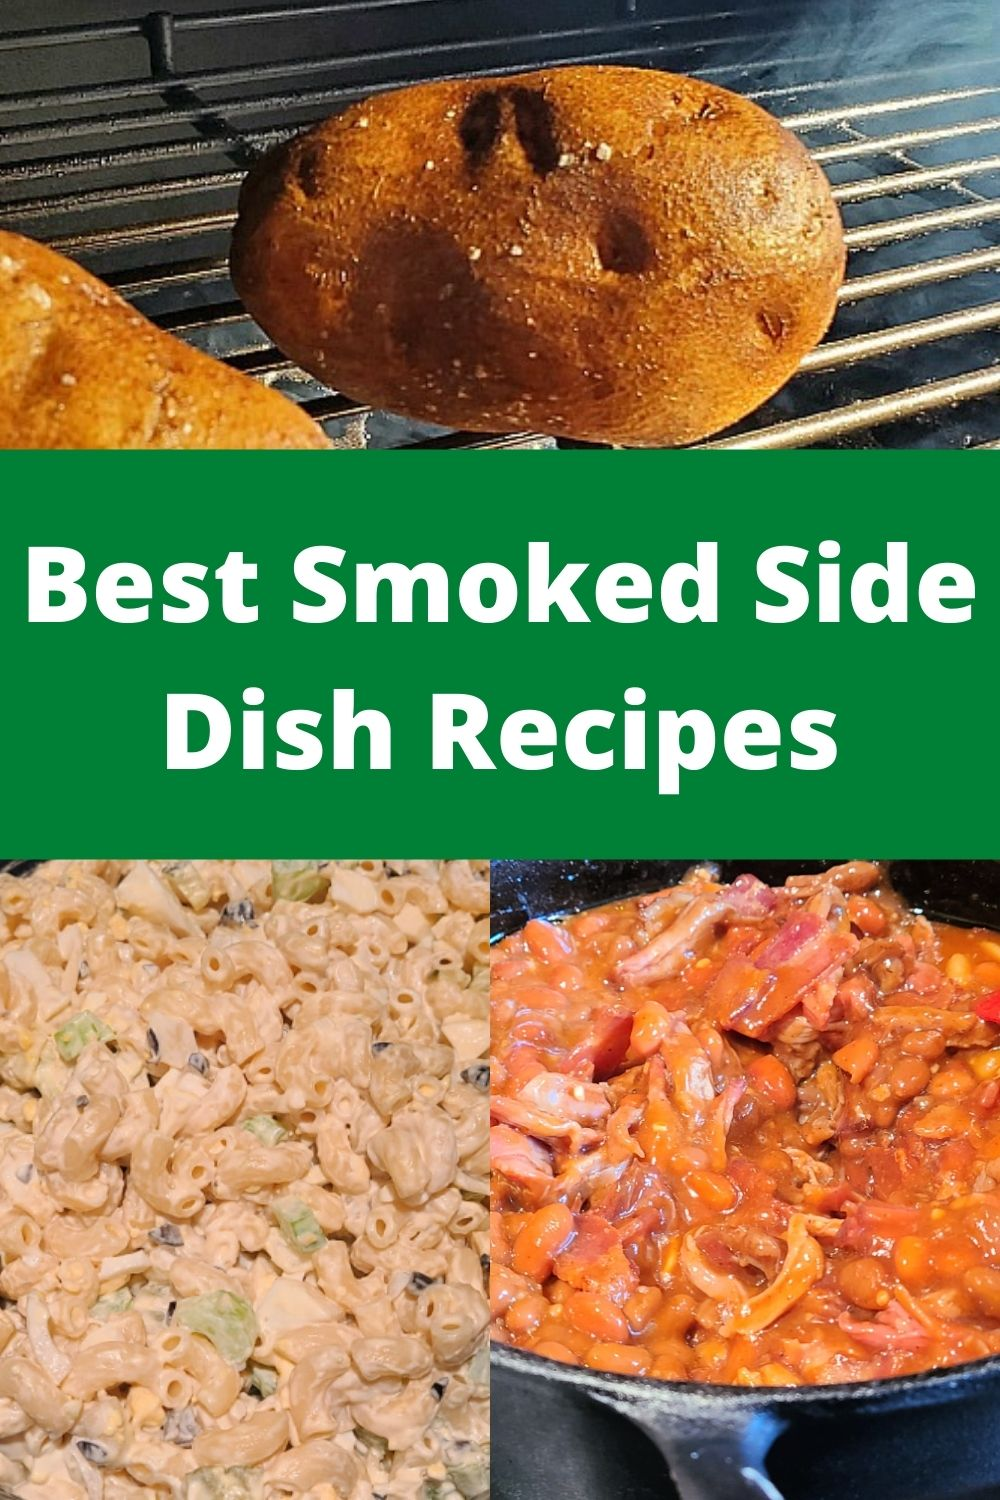 Smoked Side Dishes are amazing when made as a pellet grill side dish! They can smoke alongside the main dish in the smoker to add extra flavor to any meal! From Macaroni, to bed dip, to smoked beans the possibilities are endless! Pellet smoker, charcoal smoker, or electric smoker are perfect for asking these side dishes!